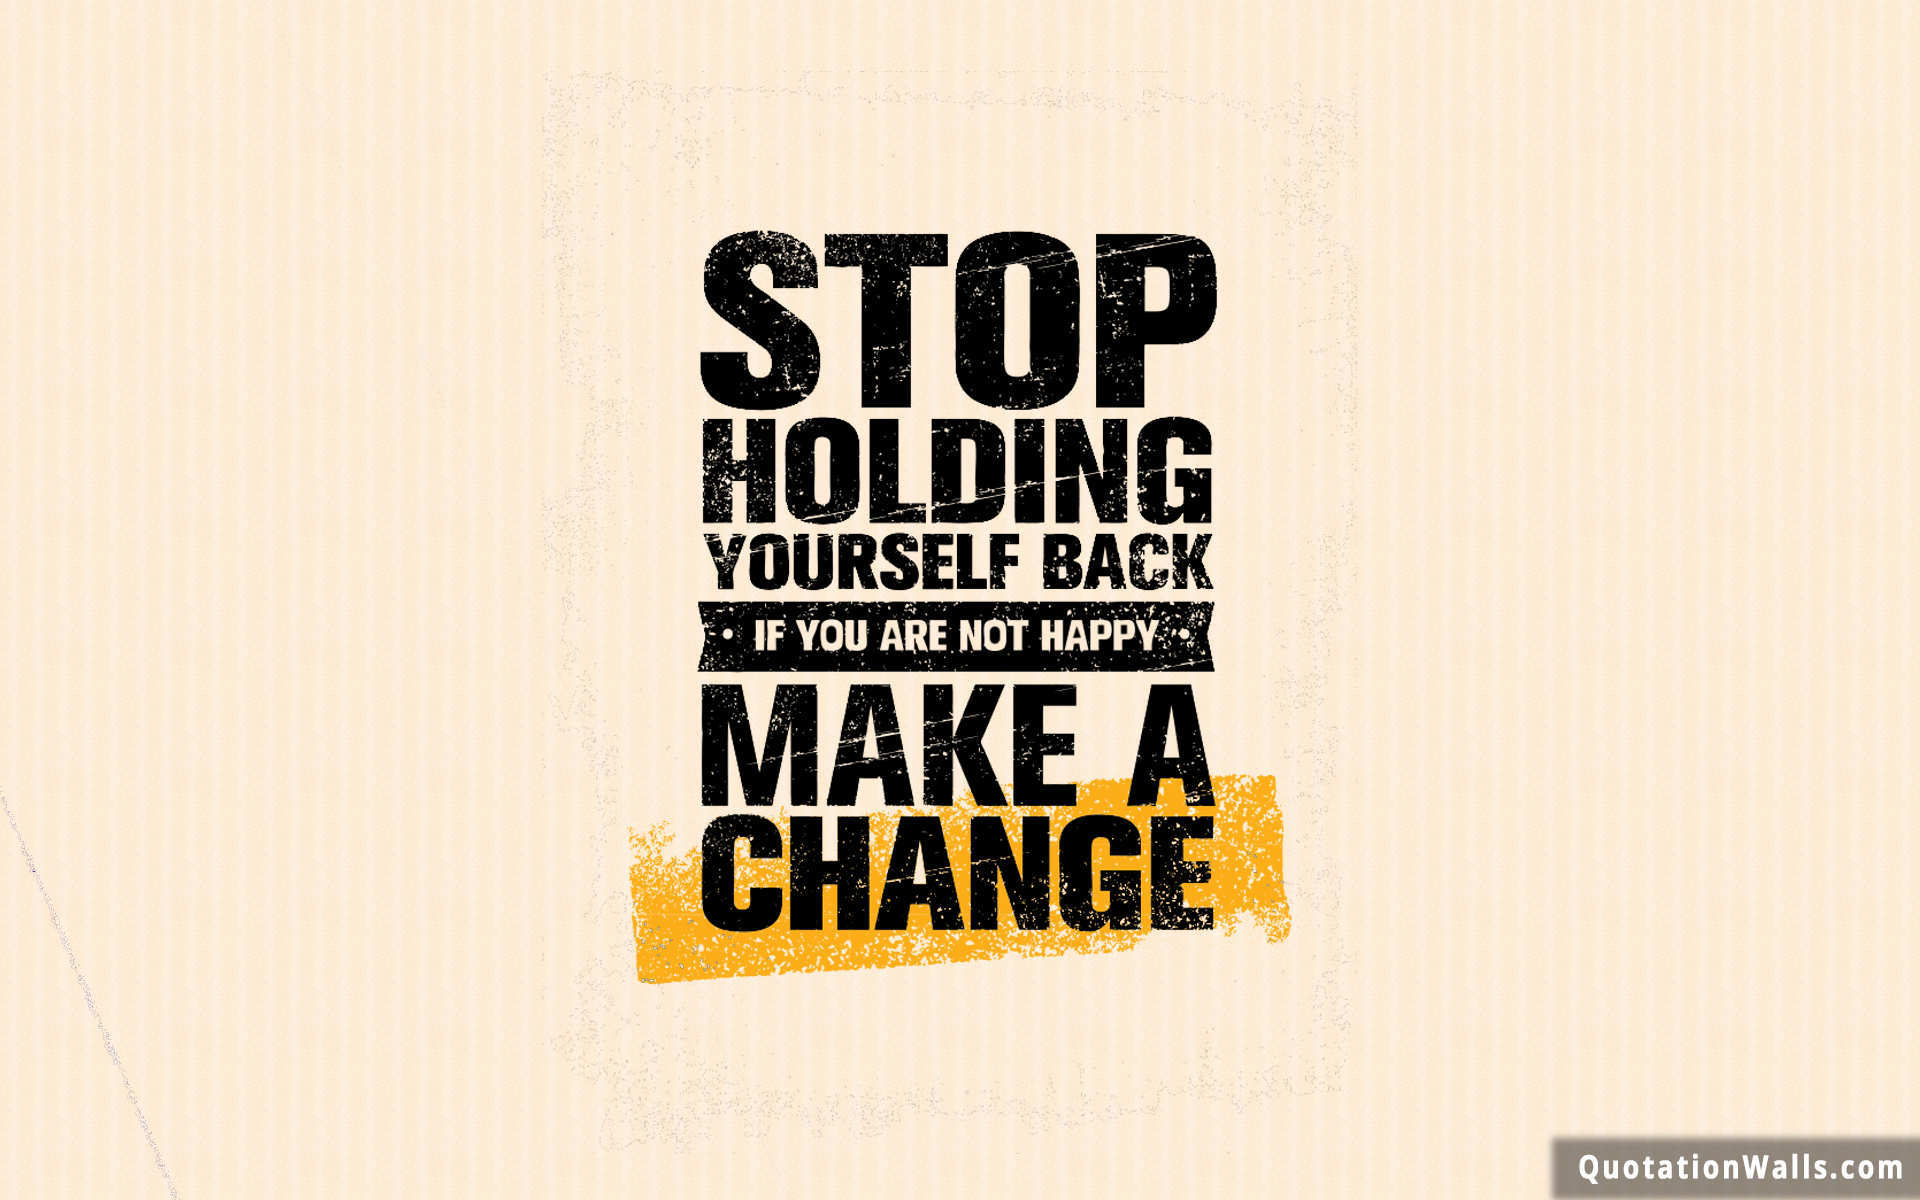 Make A Change Wallpaper For Desktop